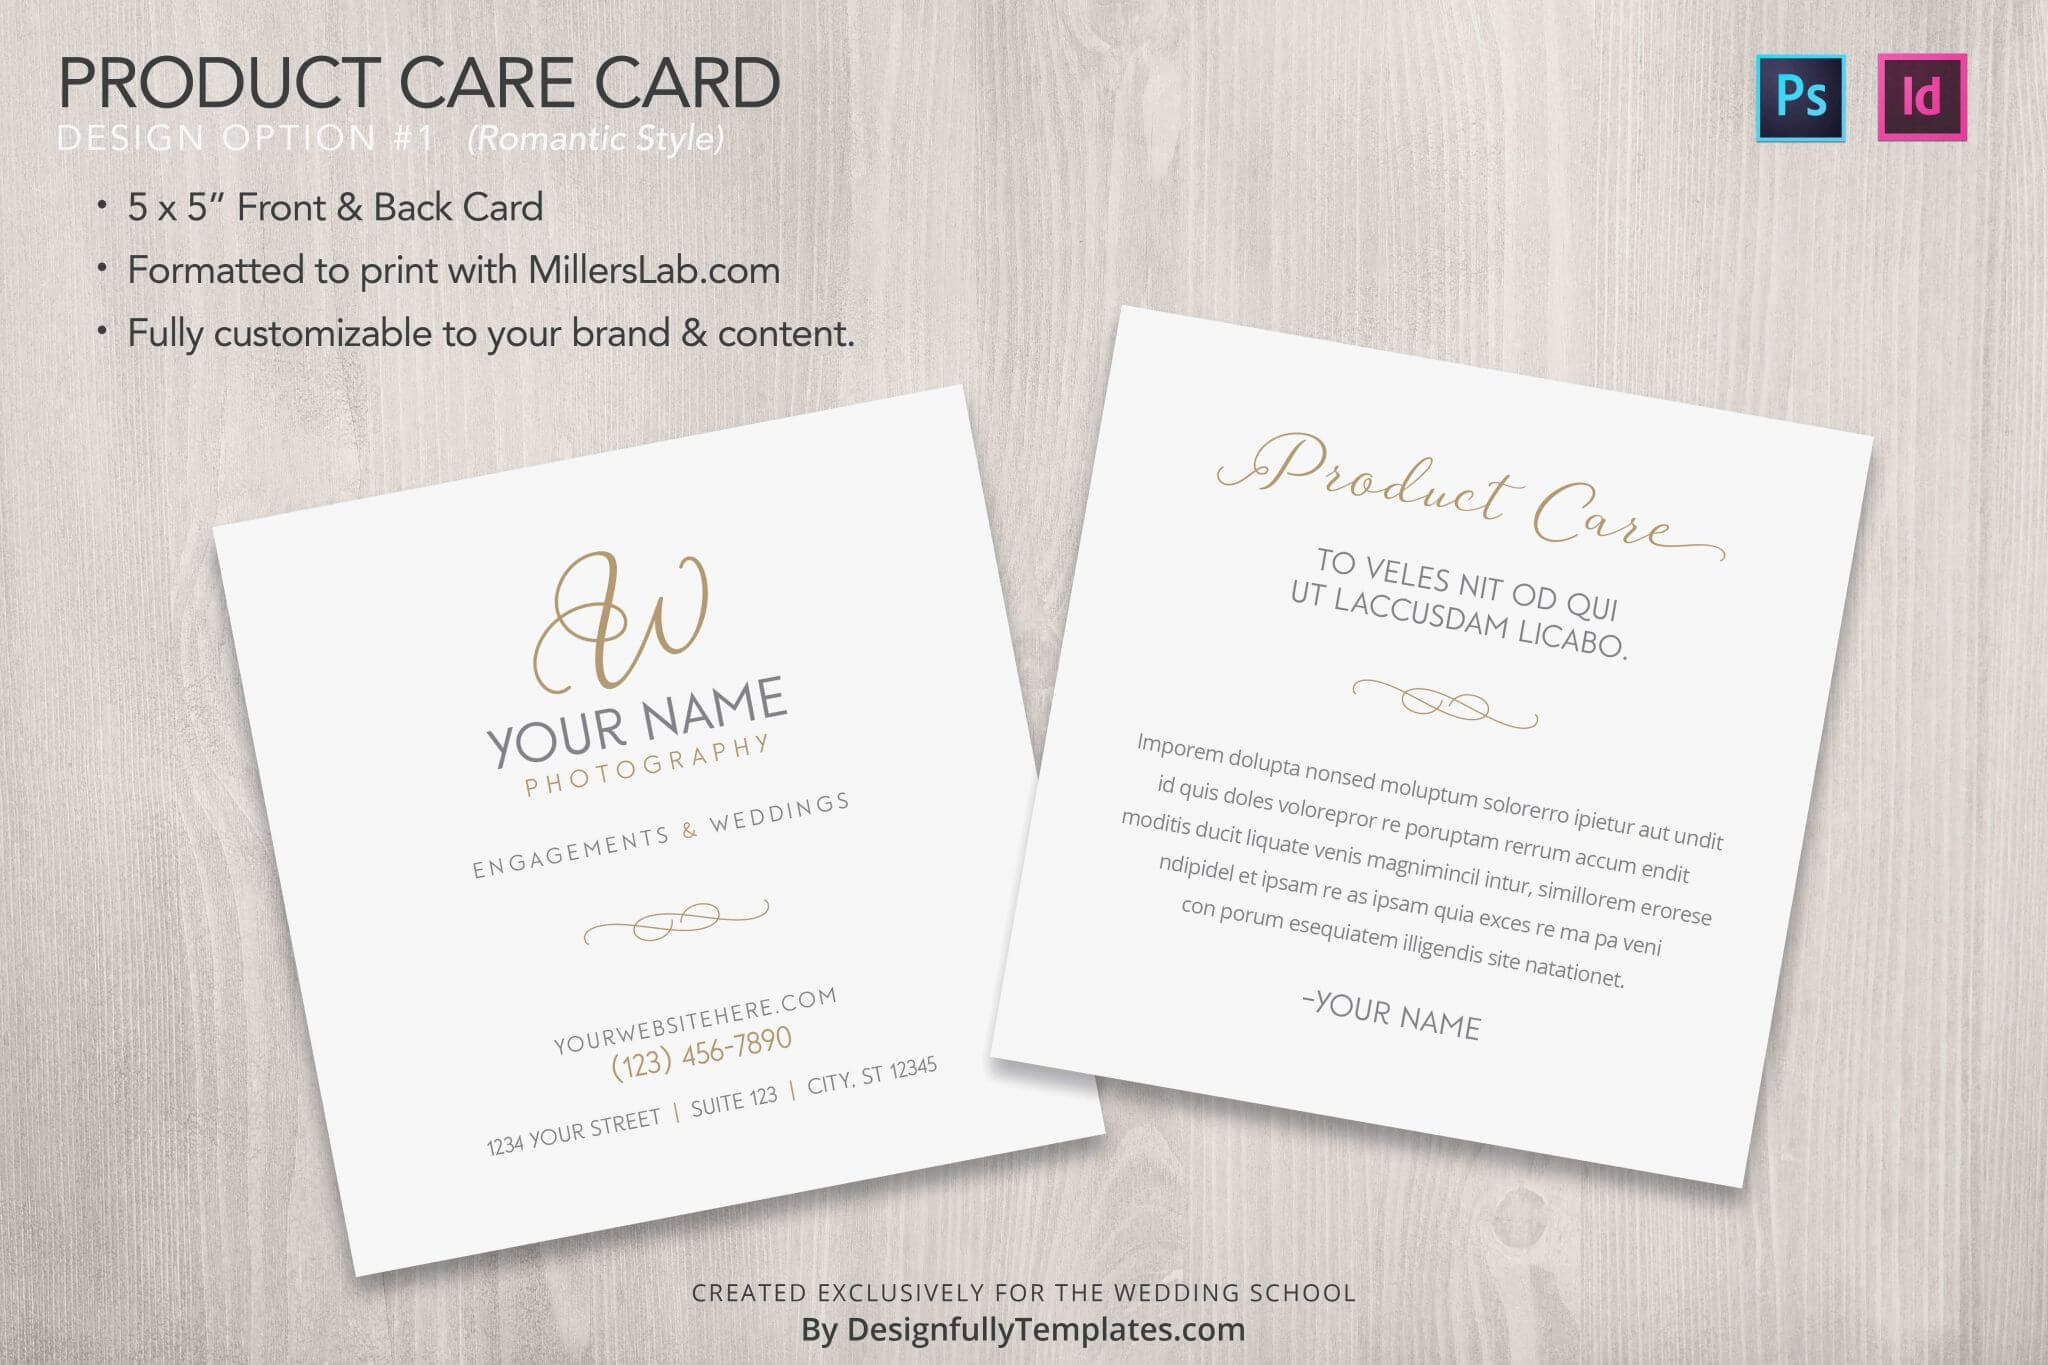 Free Place Card Templates 6 Per Page - Atlantaauctionco With Place Card Template 6 Per Sheet